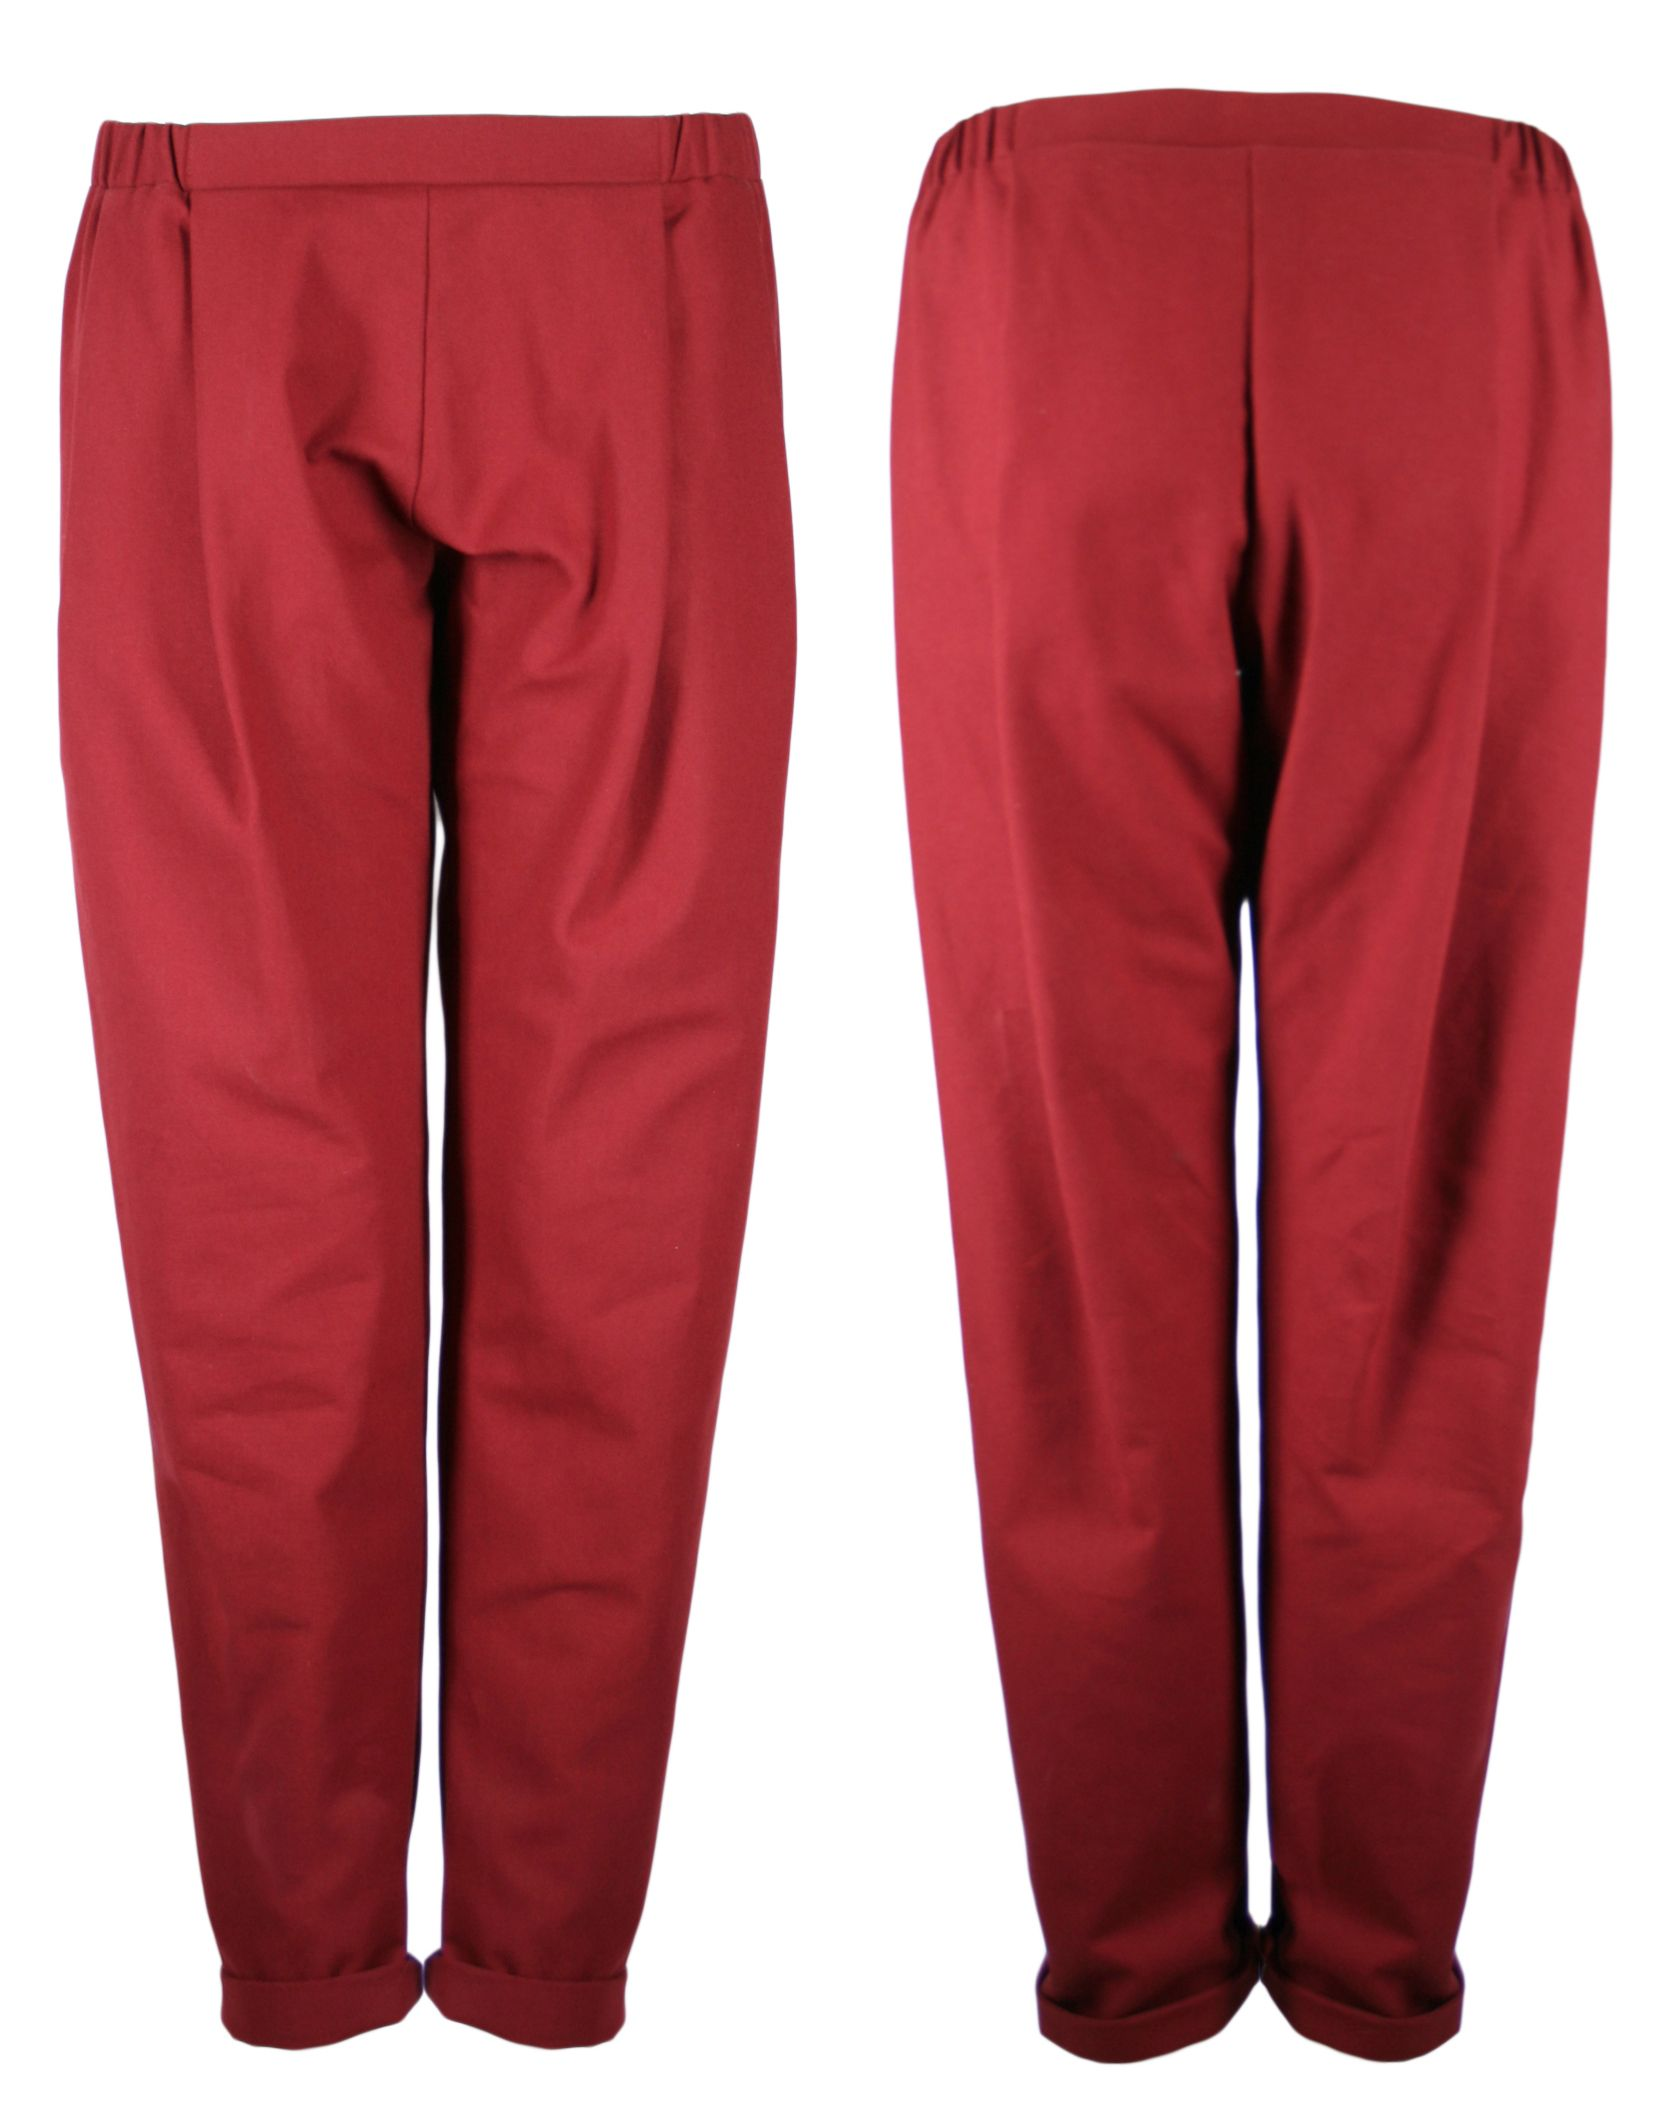 the rust canvas unisex COSY II pants out of 100% organic cotton by format available at WESEN